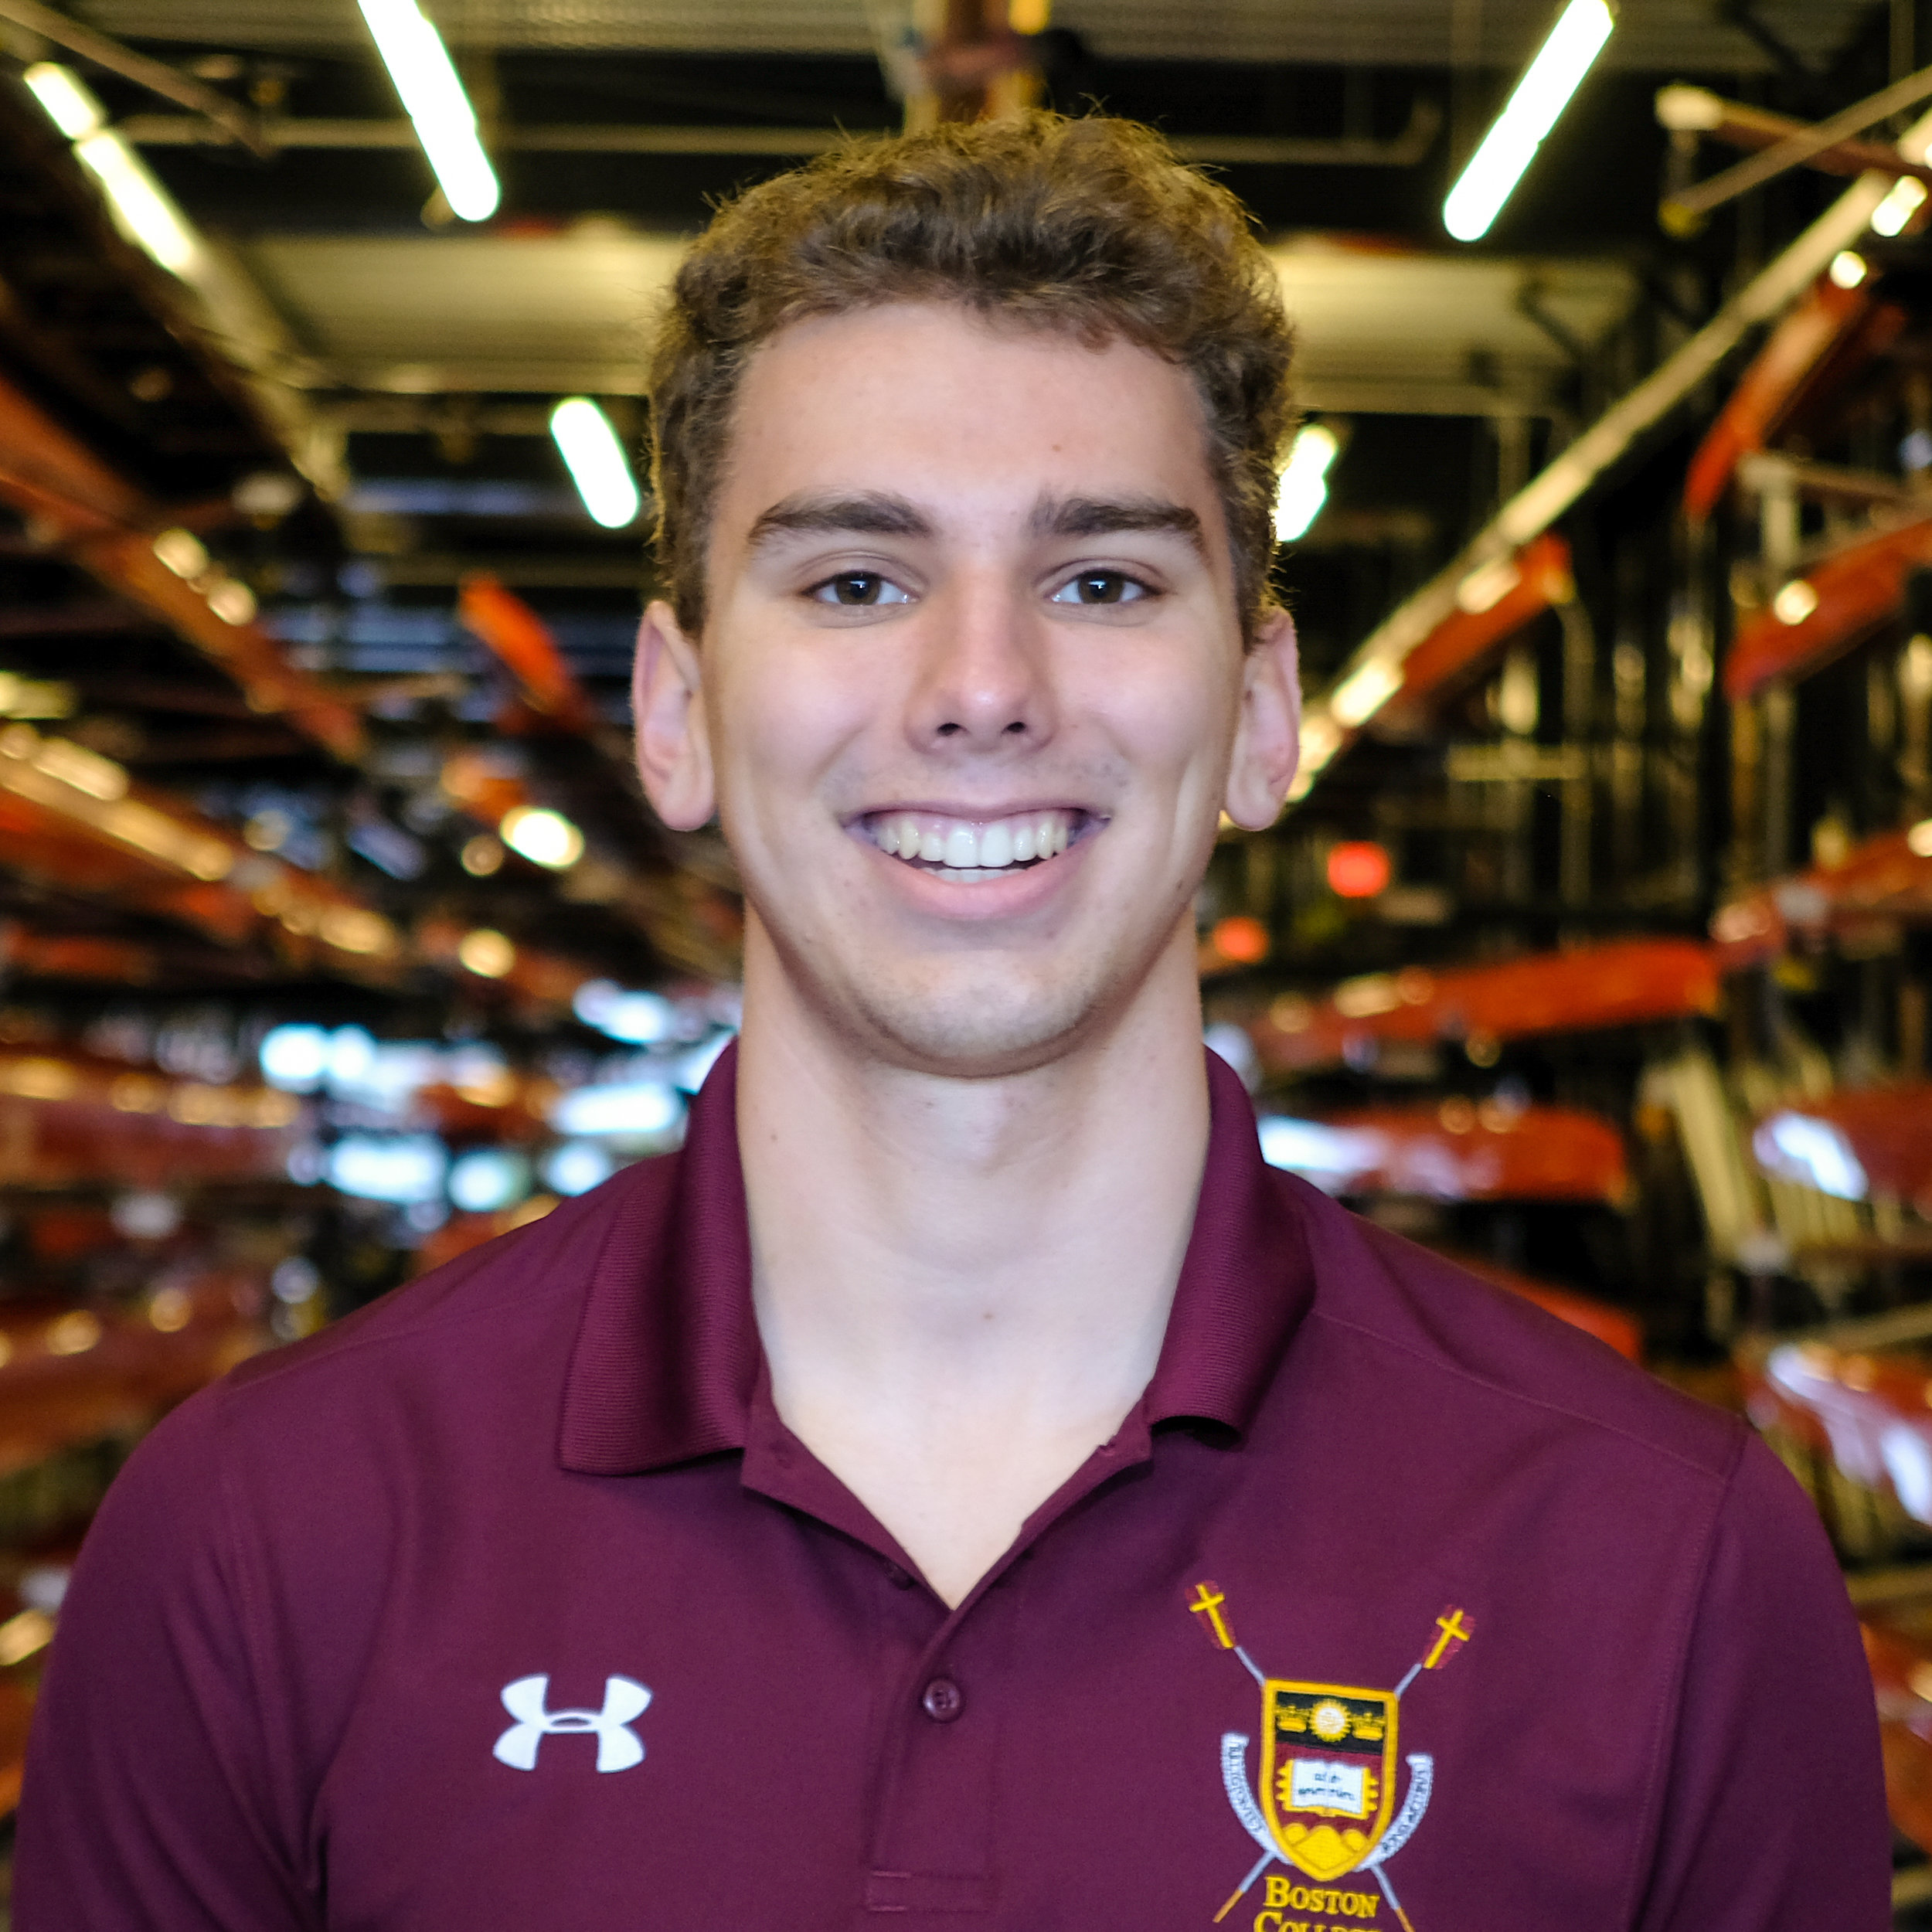 Jameson Lehrer - Hometown: Winchester, MAClass: 2022Height: 6' Weight: 195Bio: Jameson is from Winchester, Massachusetts. He is a freshman studying Political Science in the Morrisey College of Arts and Science. Jameson began rowing at Brooks School, where he rowed for four years.